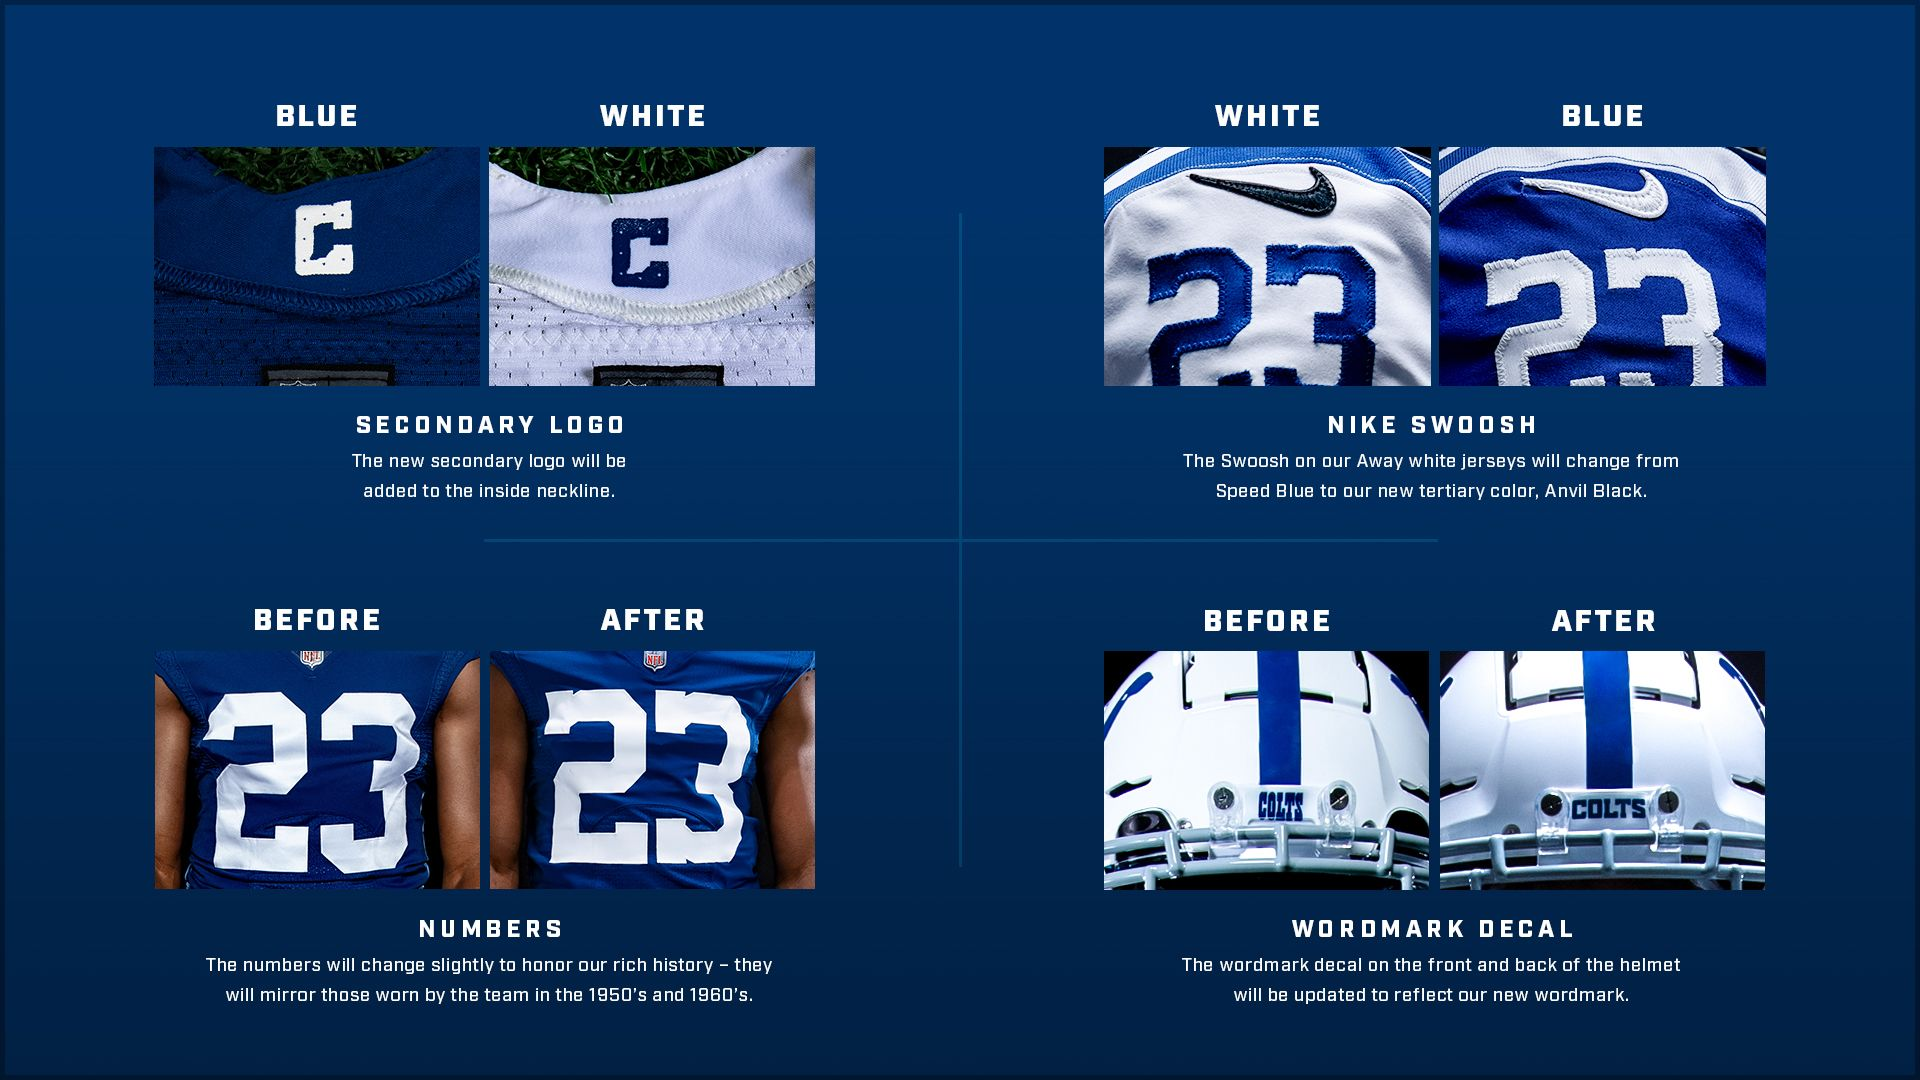 \[Images showing the uniform updates for 2020\] Uniform Changes include: Secondary Logo - The new secondary logo will be added to the inside neckline; Nike Swoosh - The Swoosh on our Away white jerseys will change from Speed Blue to our new tertiary color: Anvil Black; Numbers - The numbers will change slightly to honor our rich history - they will mirror hose worn by the team in the 1950's and 1960's; Wordmark Decal - The wordmark decal on the front and back of the helmet will be updated to reflect our new wordmark.